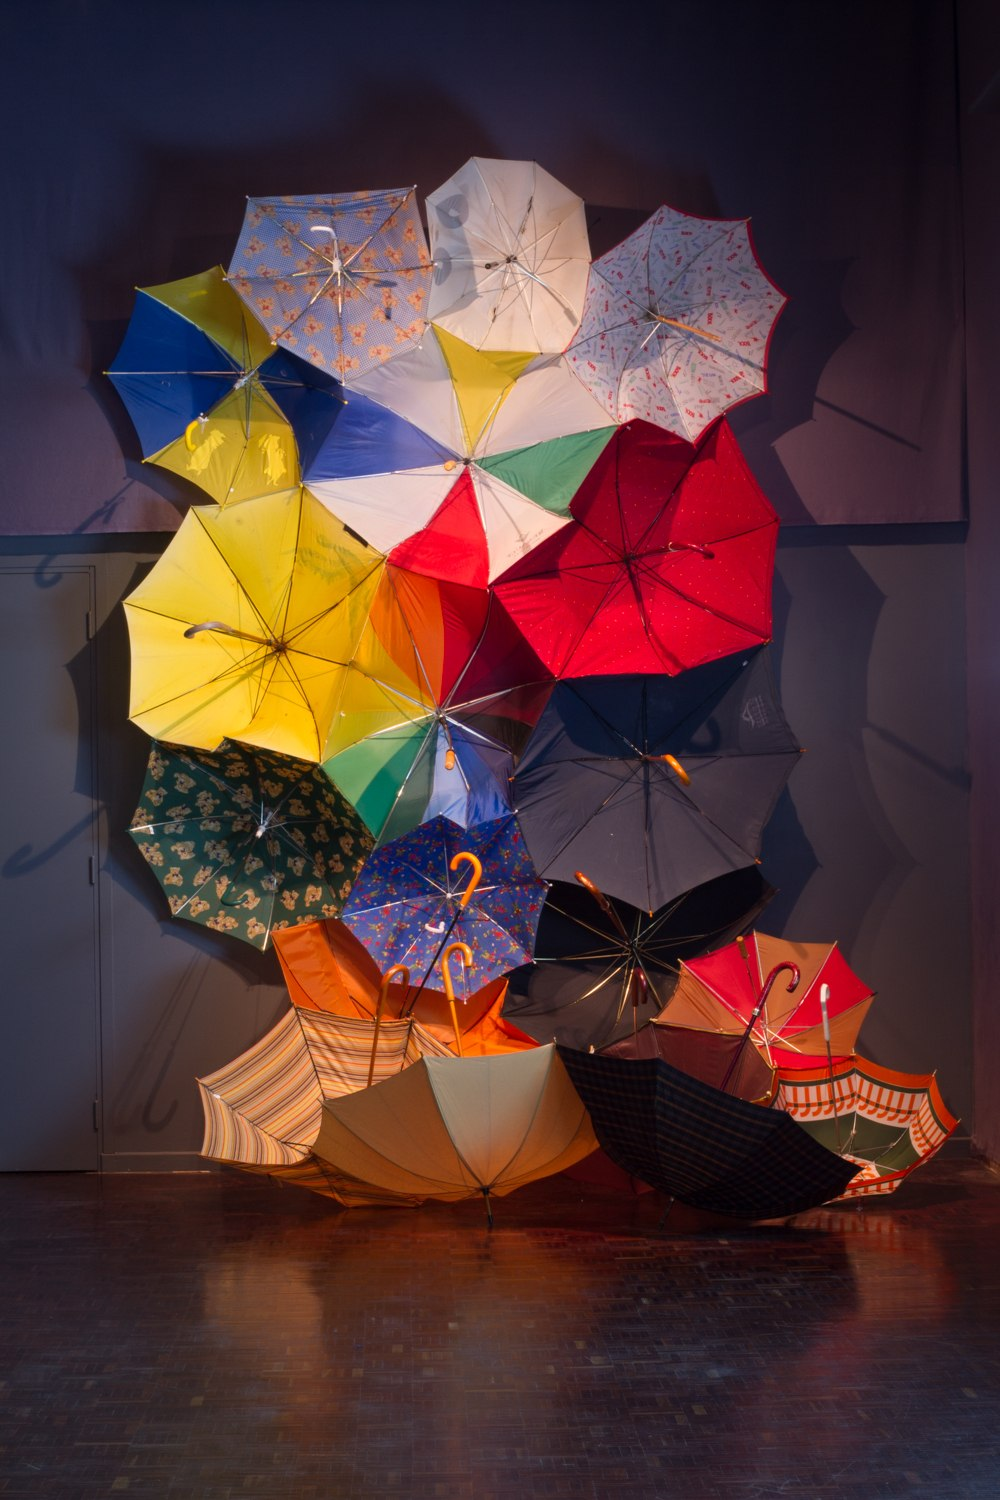 Parapluie Collective, Communal Umbrella, 2013, Installation, Dimensions Variable, Used/Broken Umbrellas, Thread, Velcro, Centre Culturel Saint Exupéry, Reims